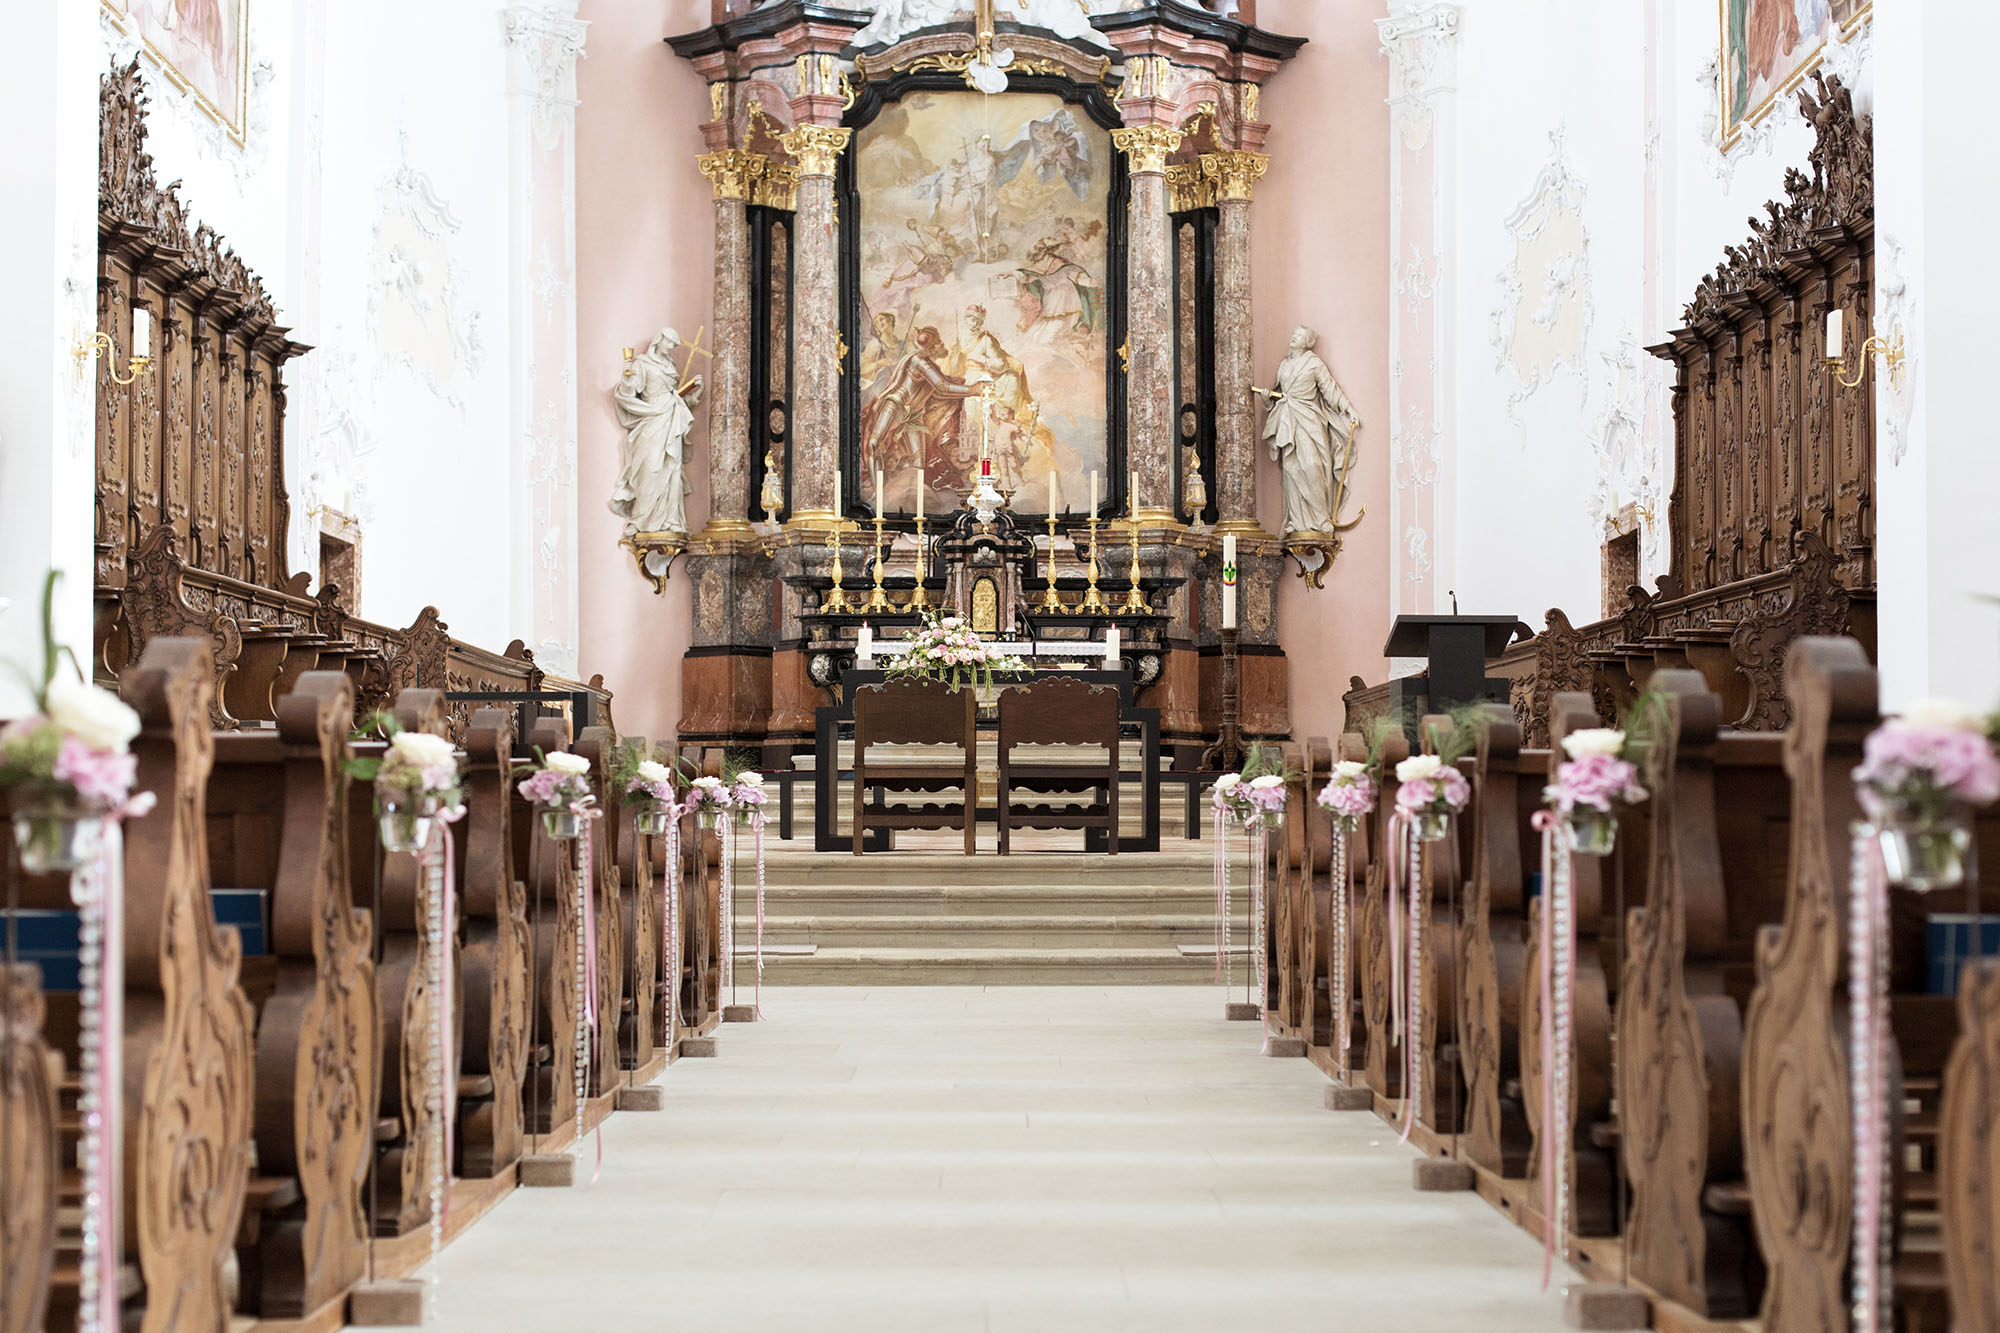 Dekoration in der Kirche in Arlesheim